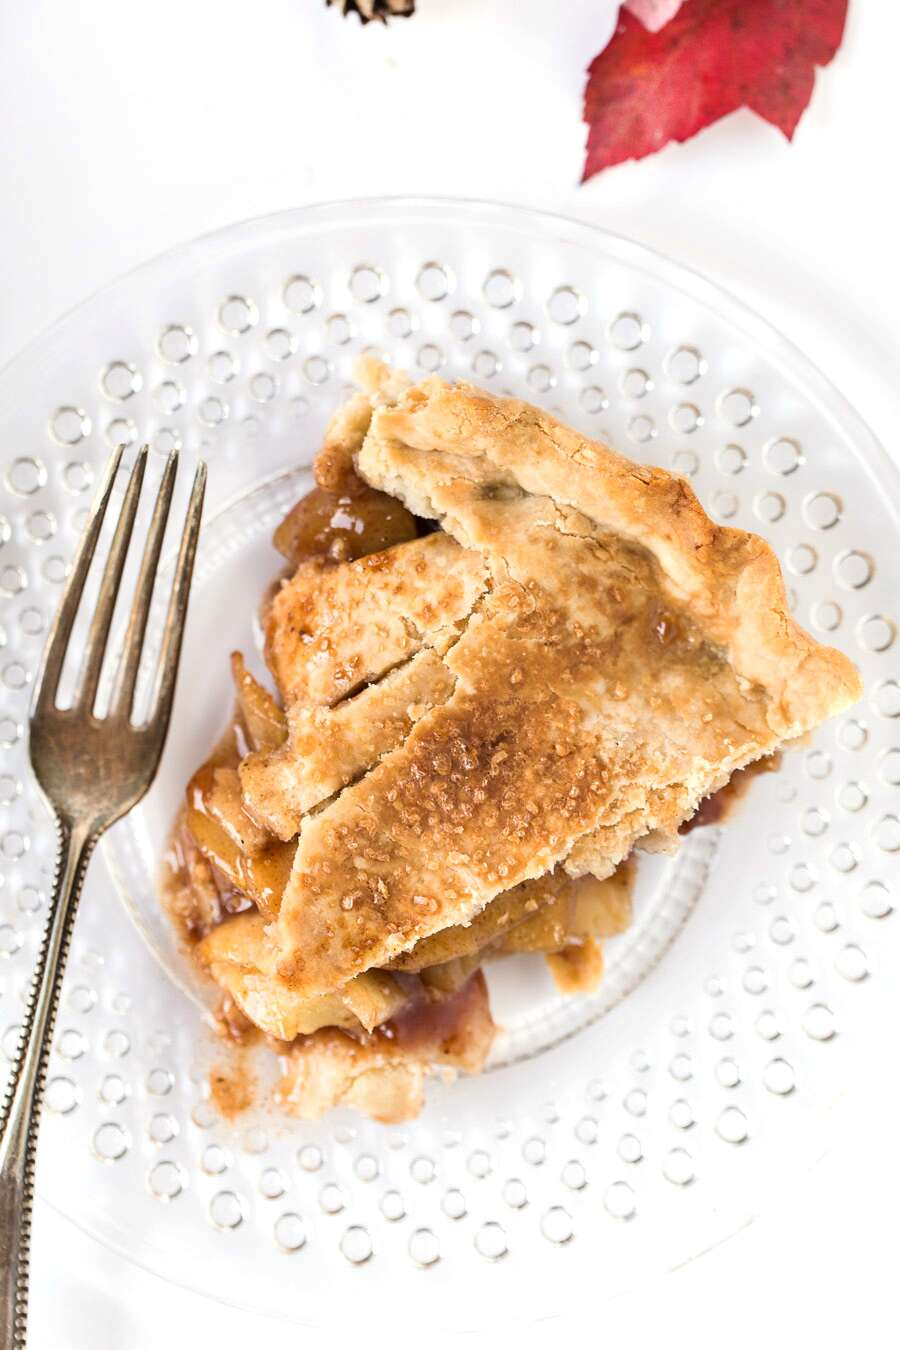 Classic Gluten-Free Double Pie Crust with an Apple Filling via @kingarthurflour